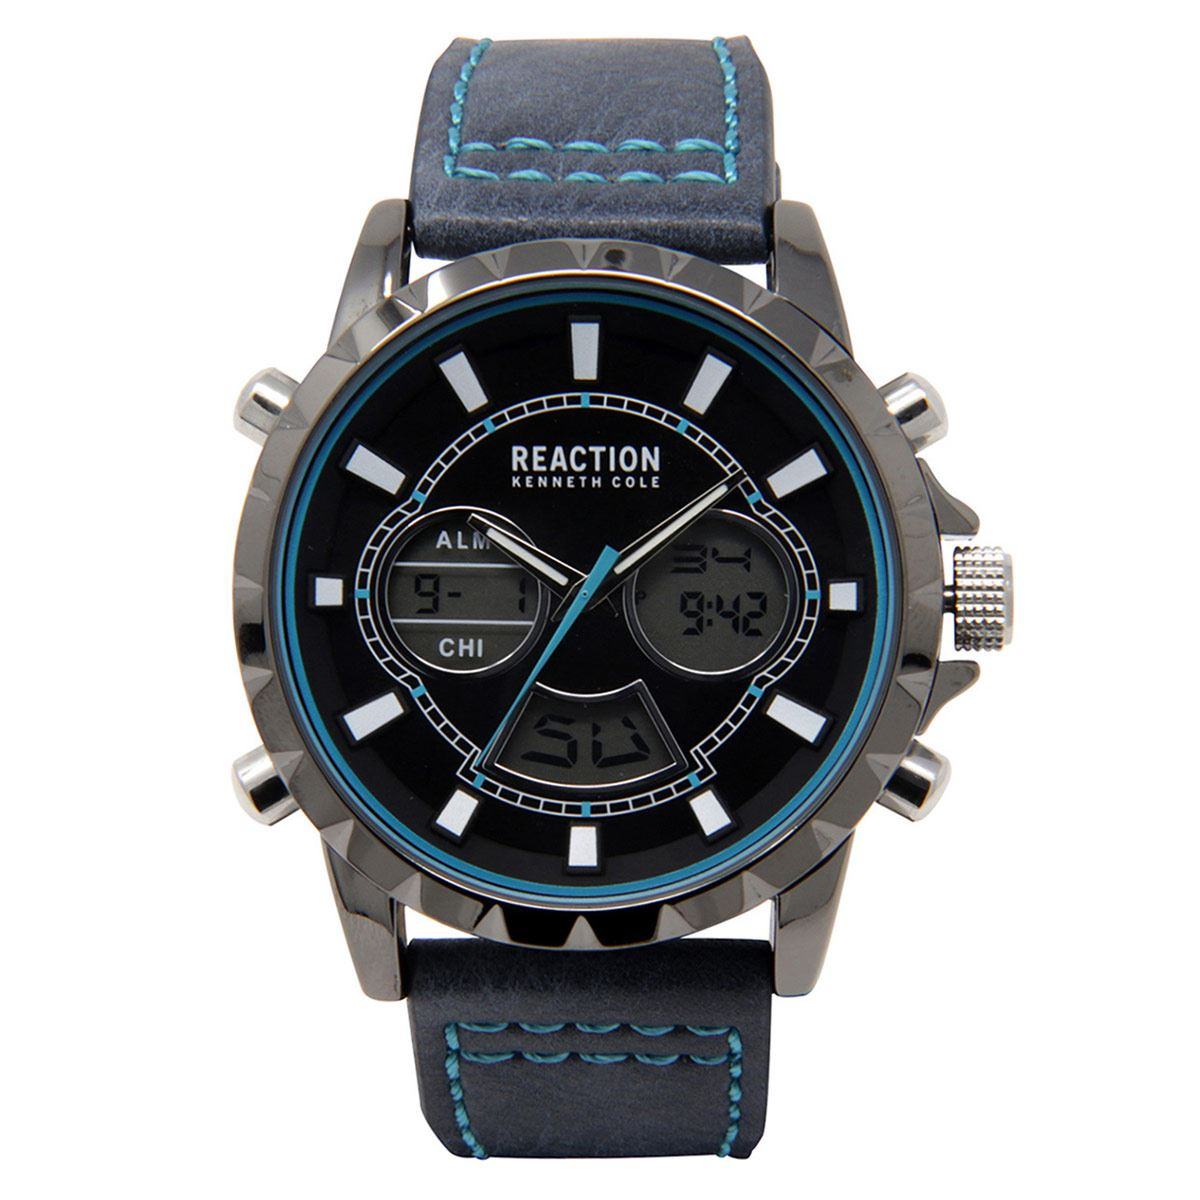 Reloj Kenneth Cole Reaction RK50966008